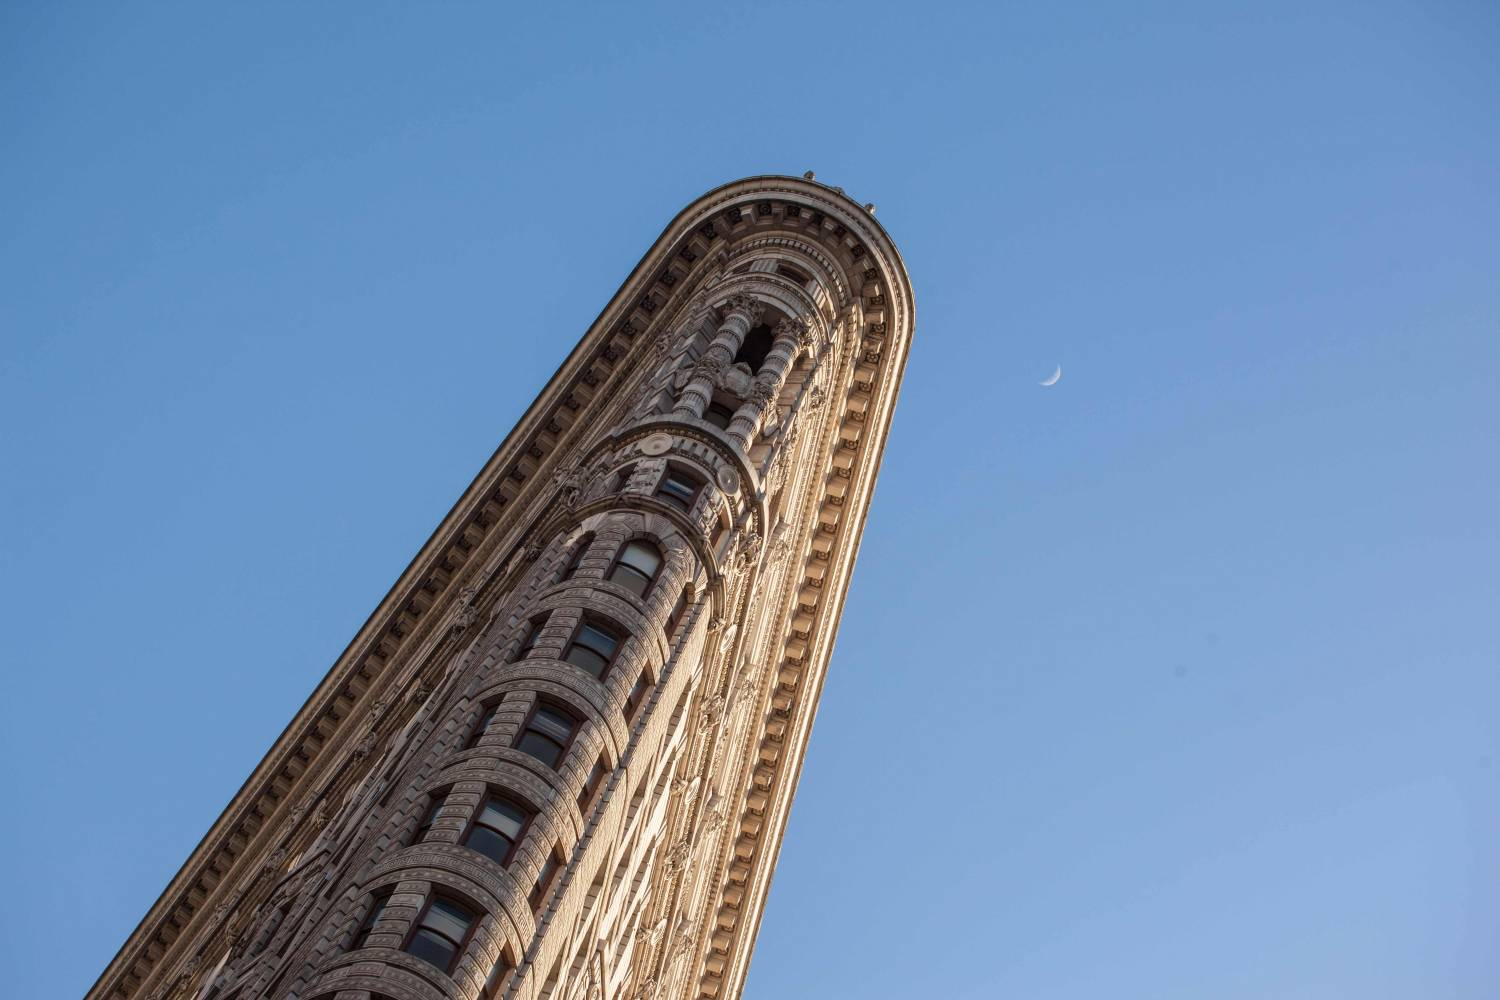 Detail of the Flatiron Building in Manhattan